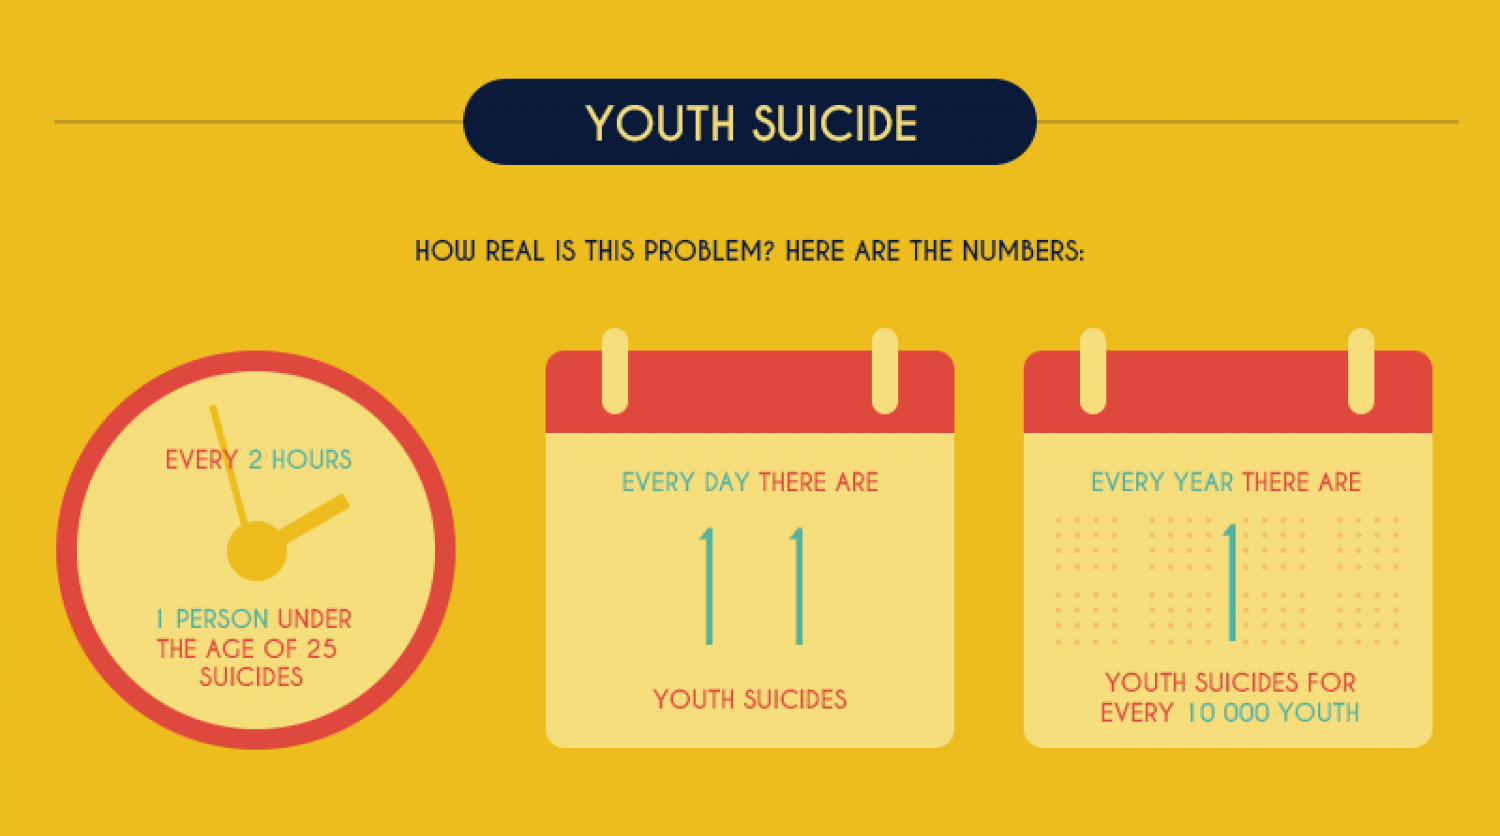 Youth Suicide Statistics Infographic